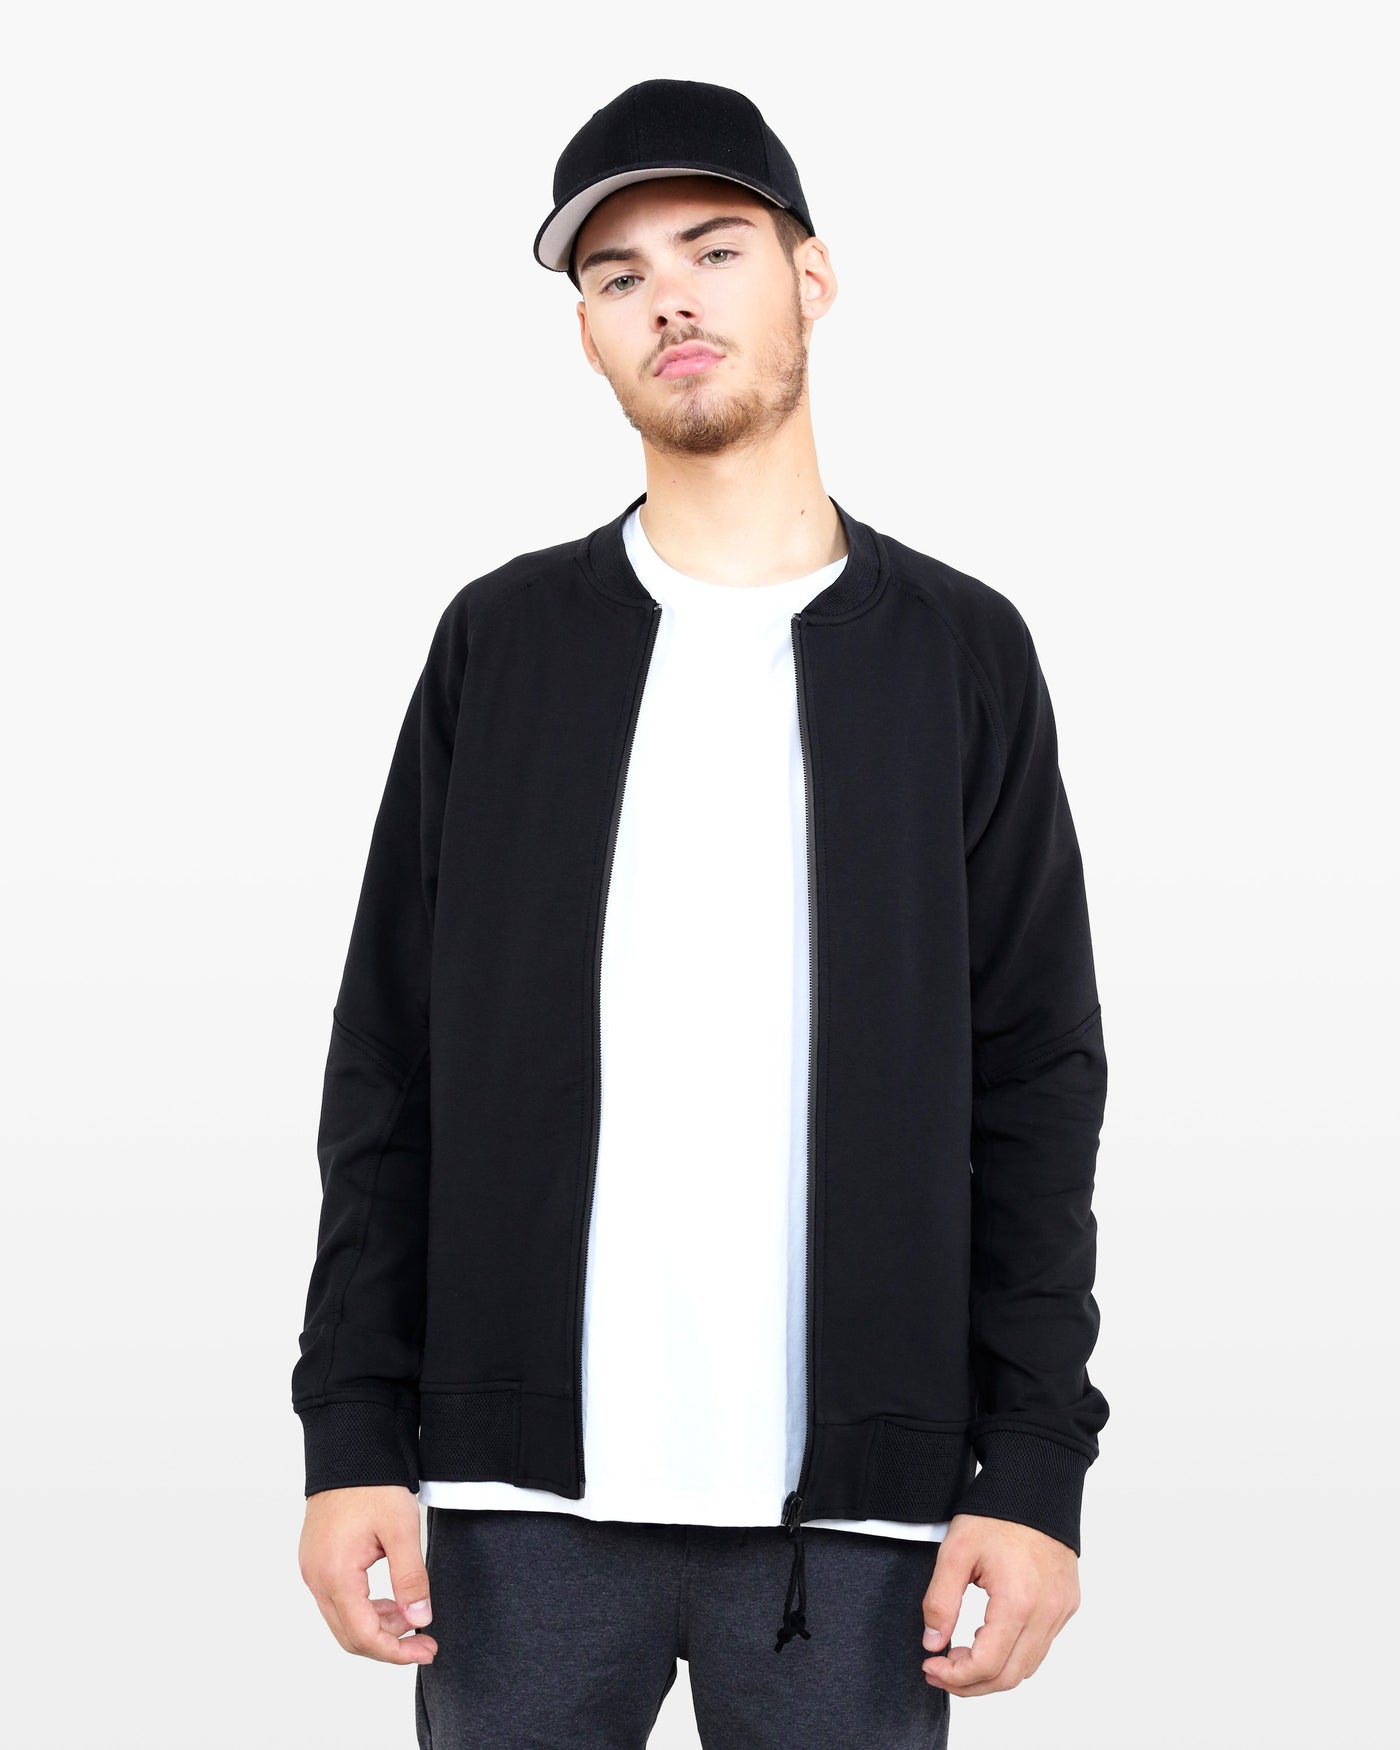 Curie Jacket DTT in black